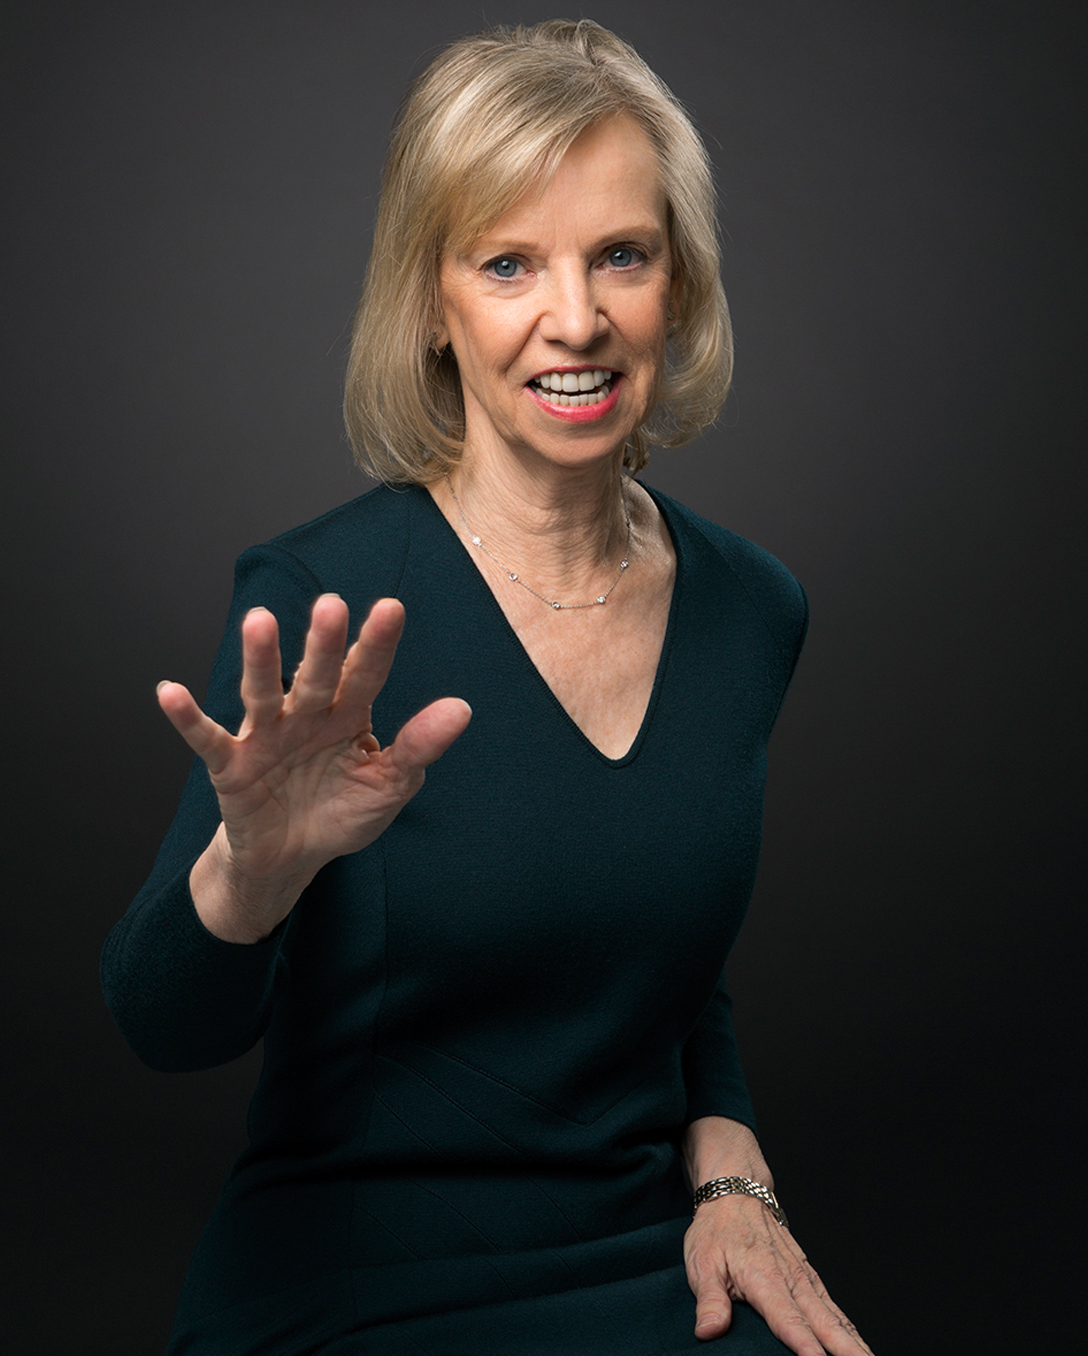 """""""Technology is a driver for lifting many companies that we've thought of as 'old economy."""" -Ann Winblad, Hummer Winblad"""